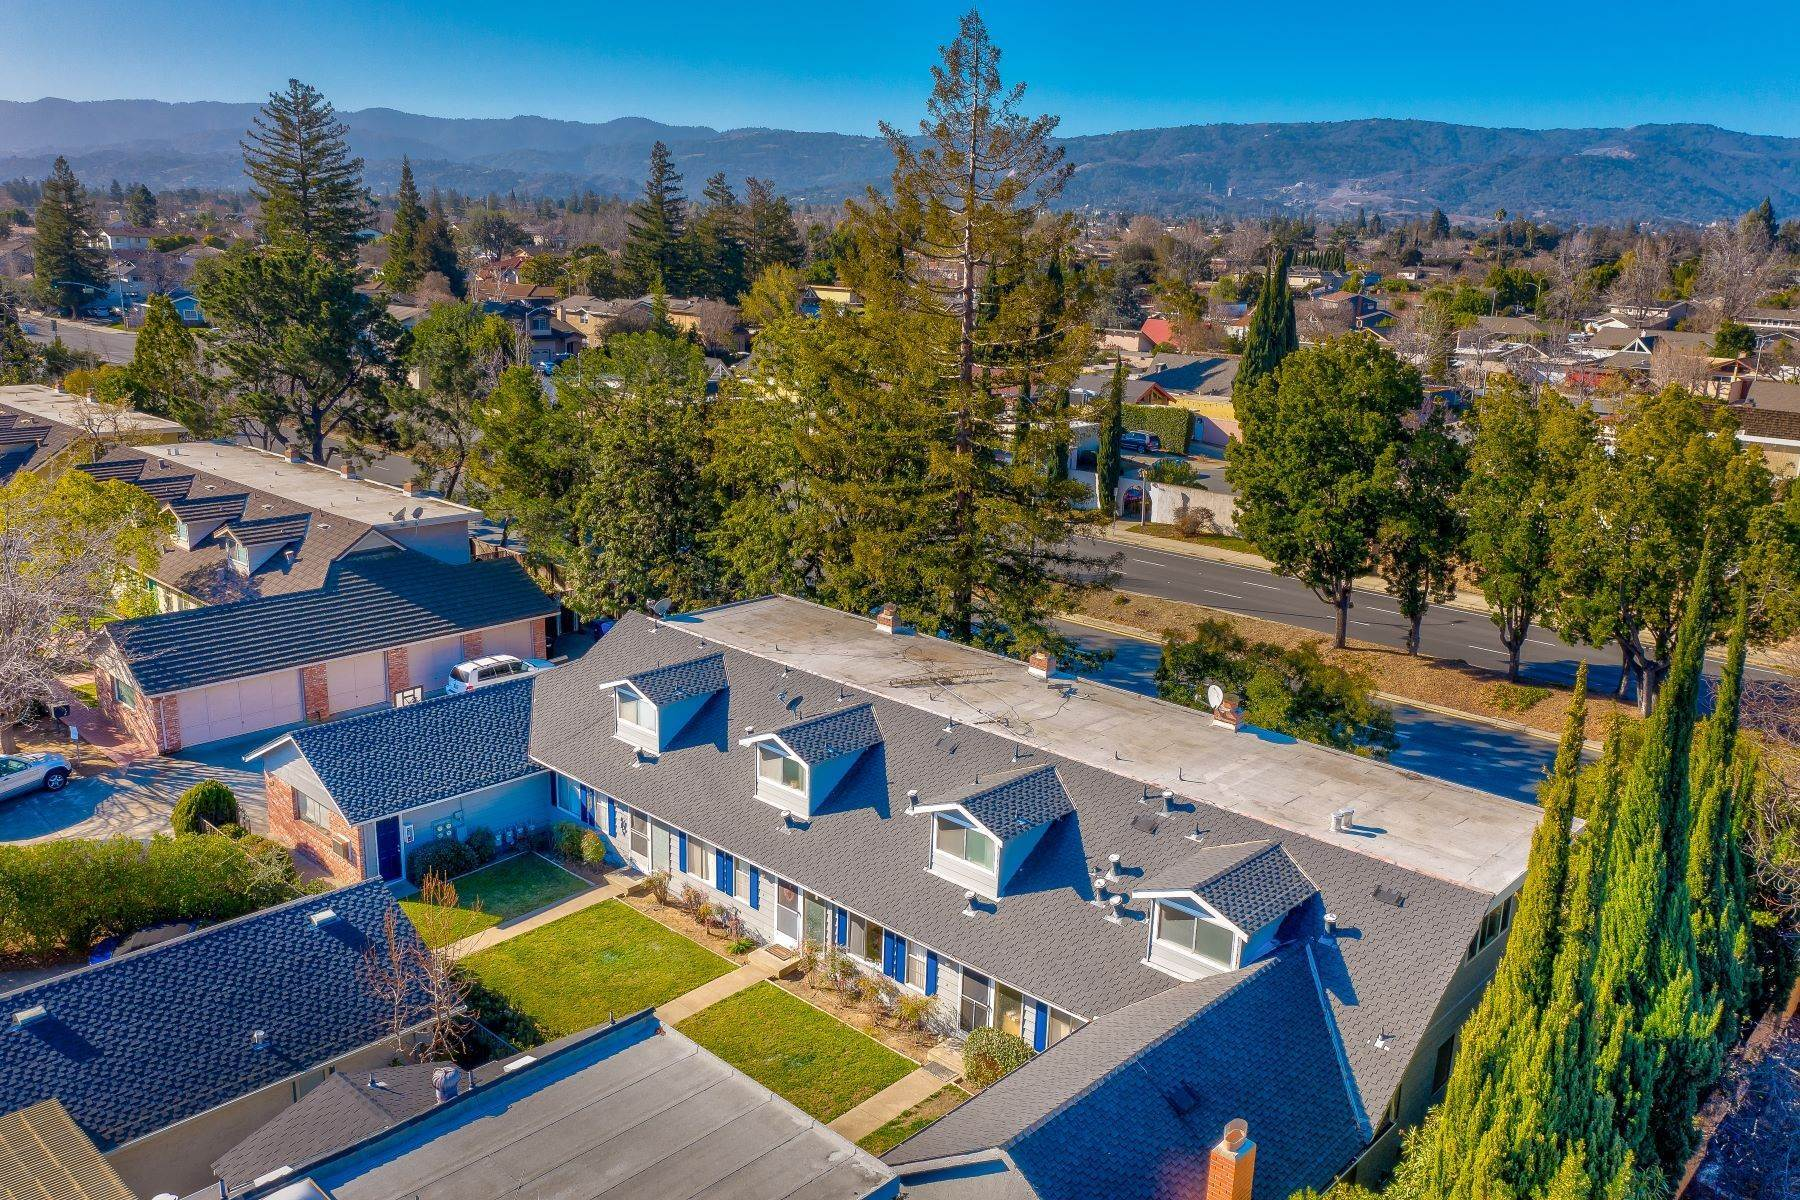 Multi-Family Homes for Sale at Four-plex in Sunnyvale, Cupertino Union School District 103 Exeter Court Sunnyvale, California 94087 United States